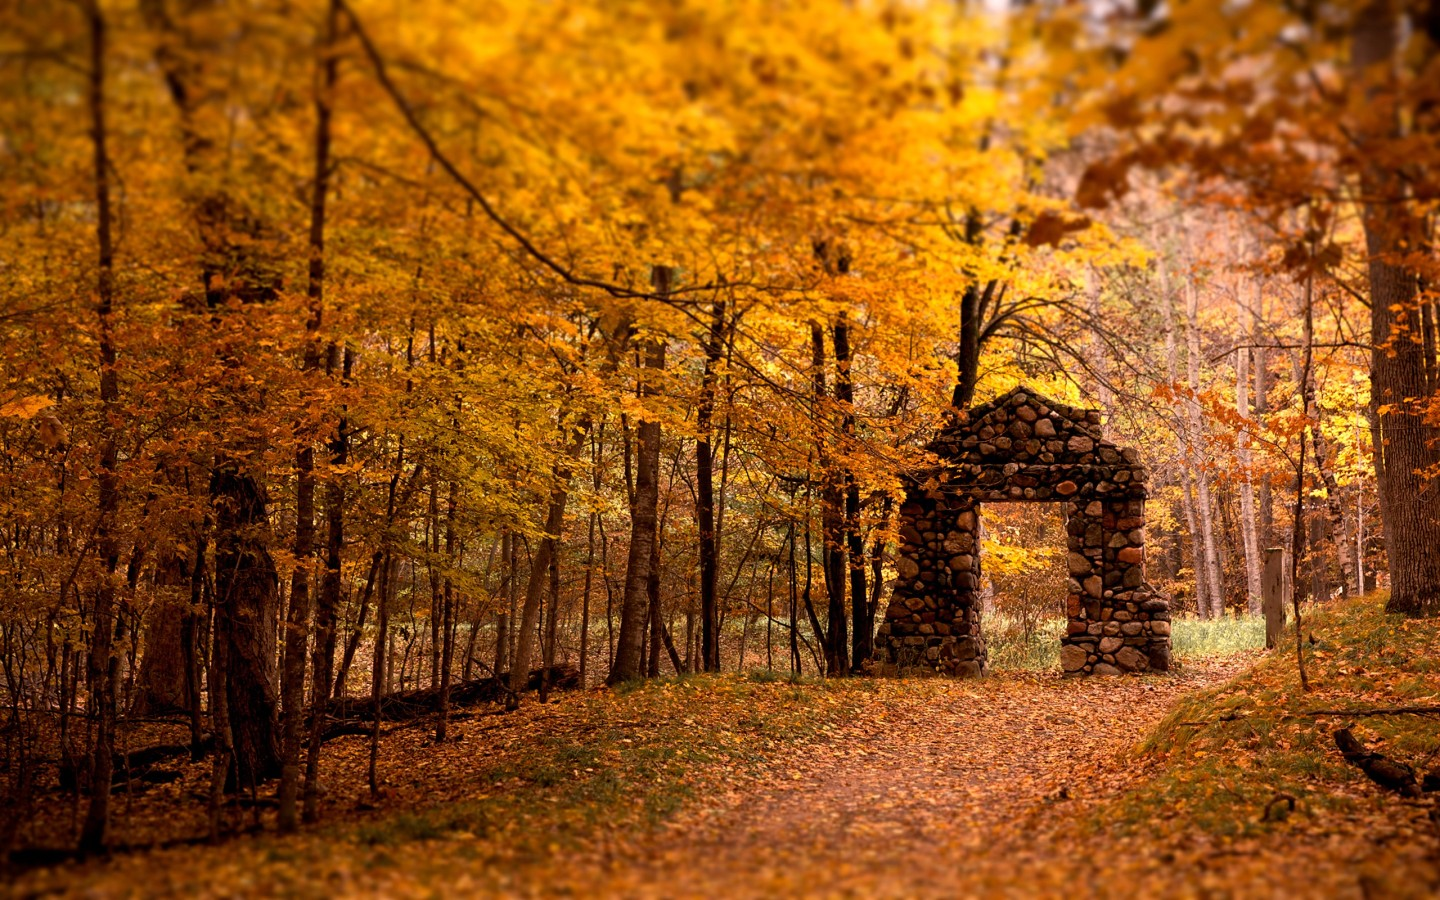 yellow autumn leaves autumn leaves autumn trees autumn forest uploaded 1440x900